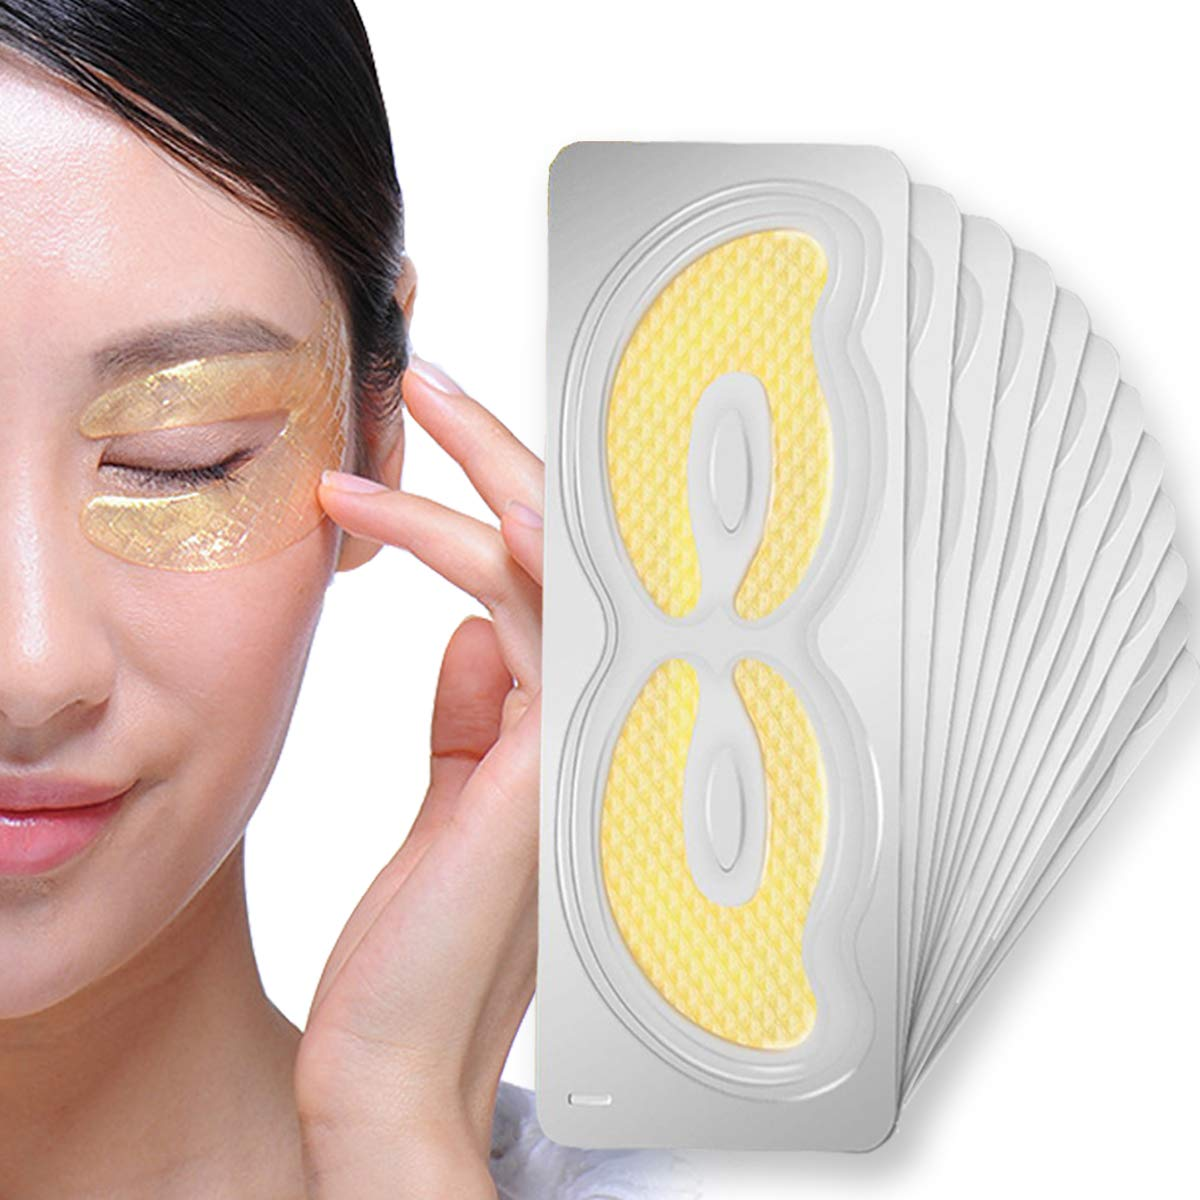 GARYOB Gold Eye Mask 24k Collagen Pads for Dark Circles Puffiness Treatment Natural with Wrinkle Care Anti Aging Mask Gift